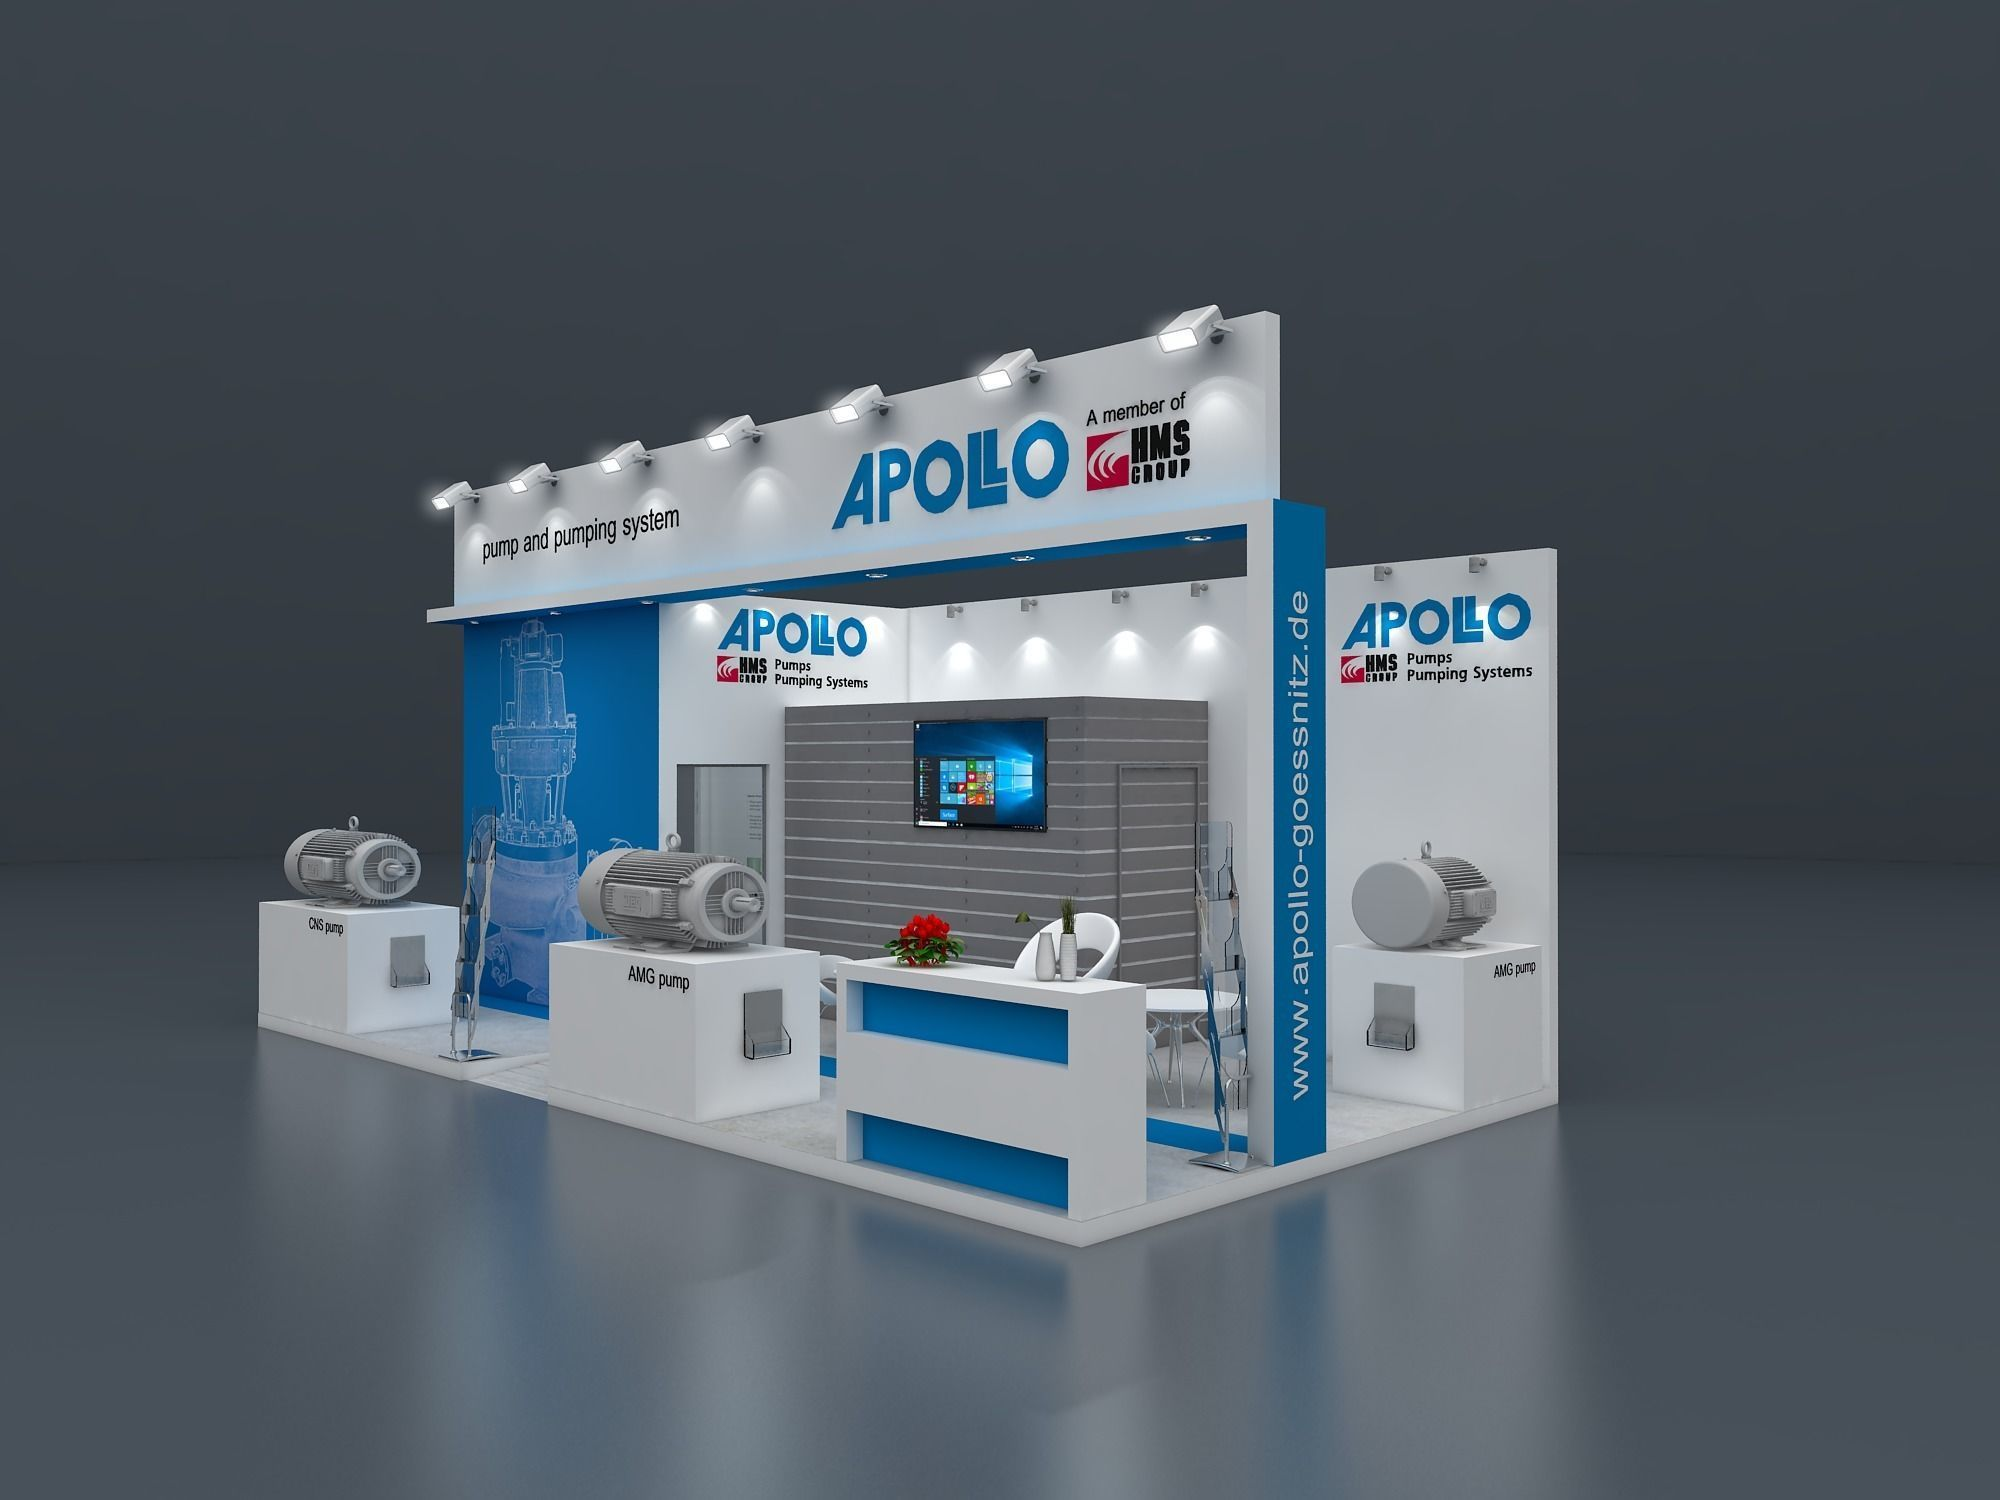 Exhibition stand 3D model 8x4 mtr 3 sides open 3D model | 3D model